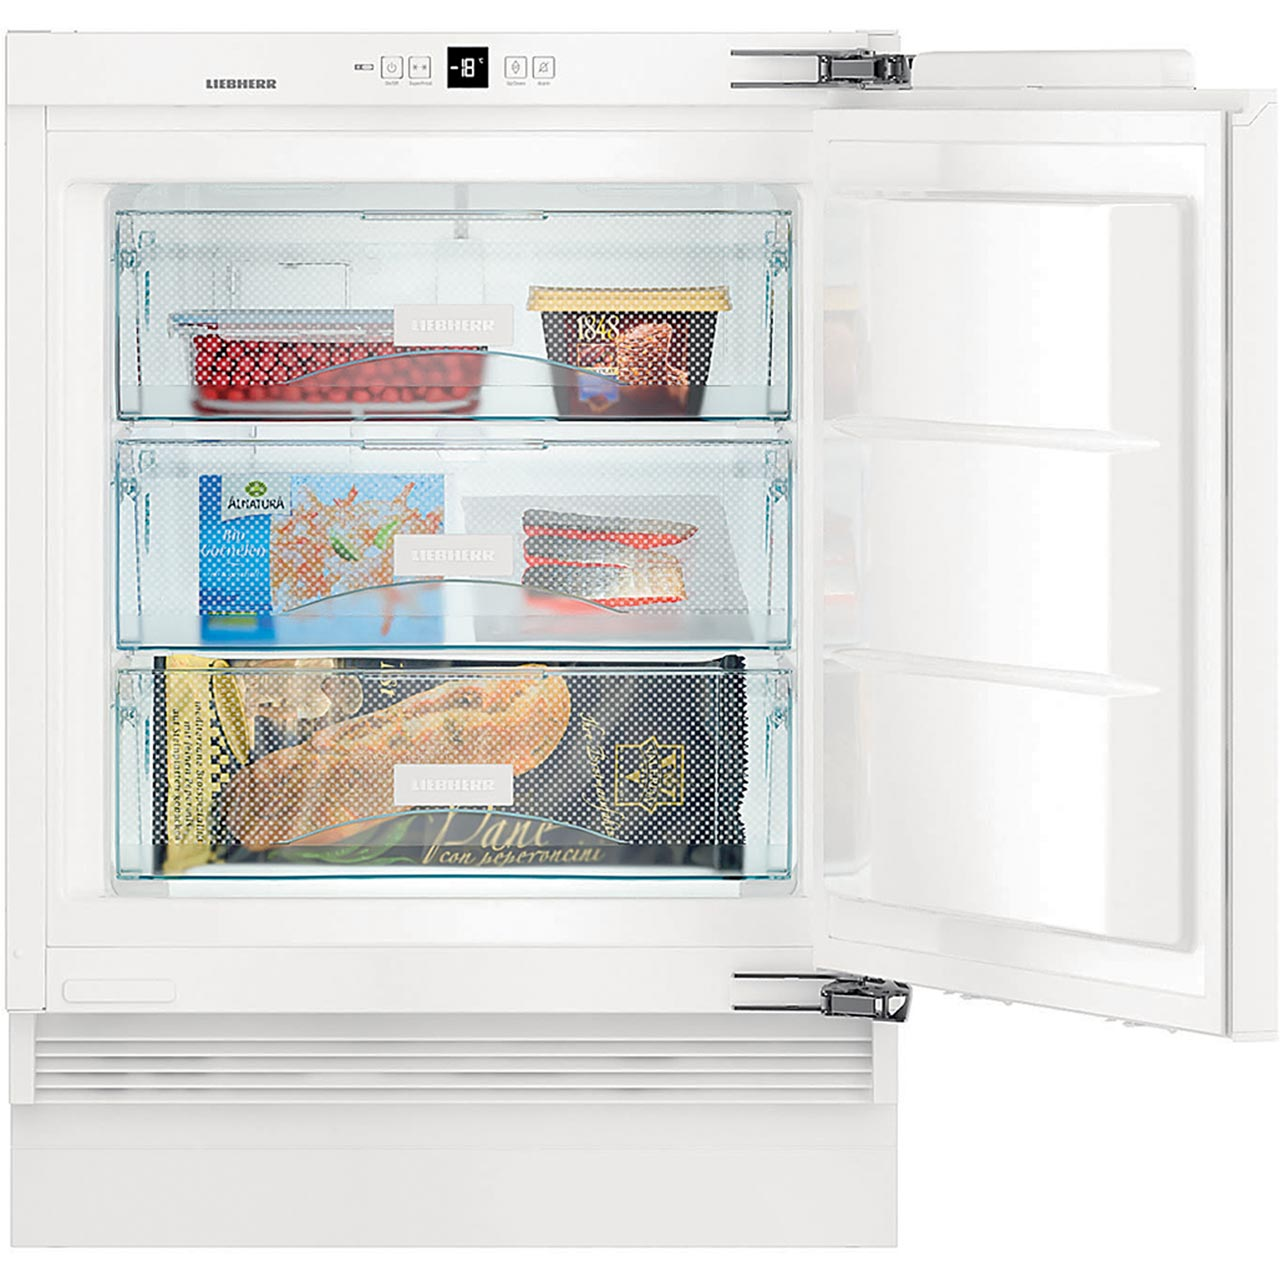 Liebherr SUIG1514 Integrated Under Counter Freezer review